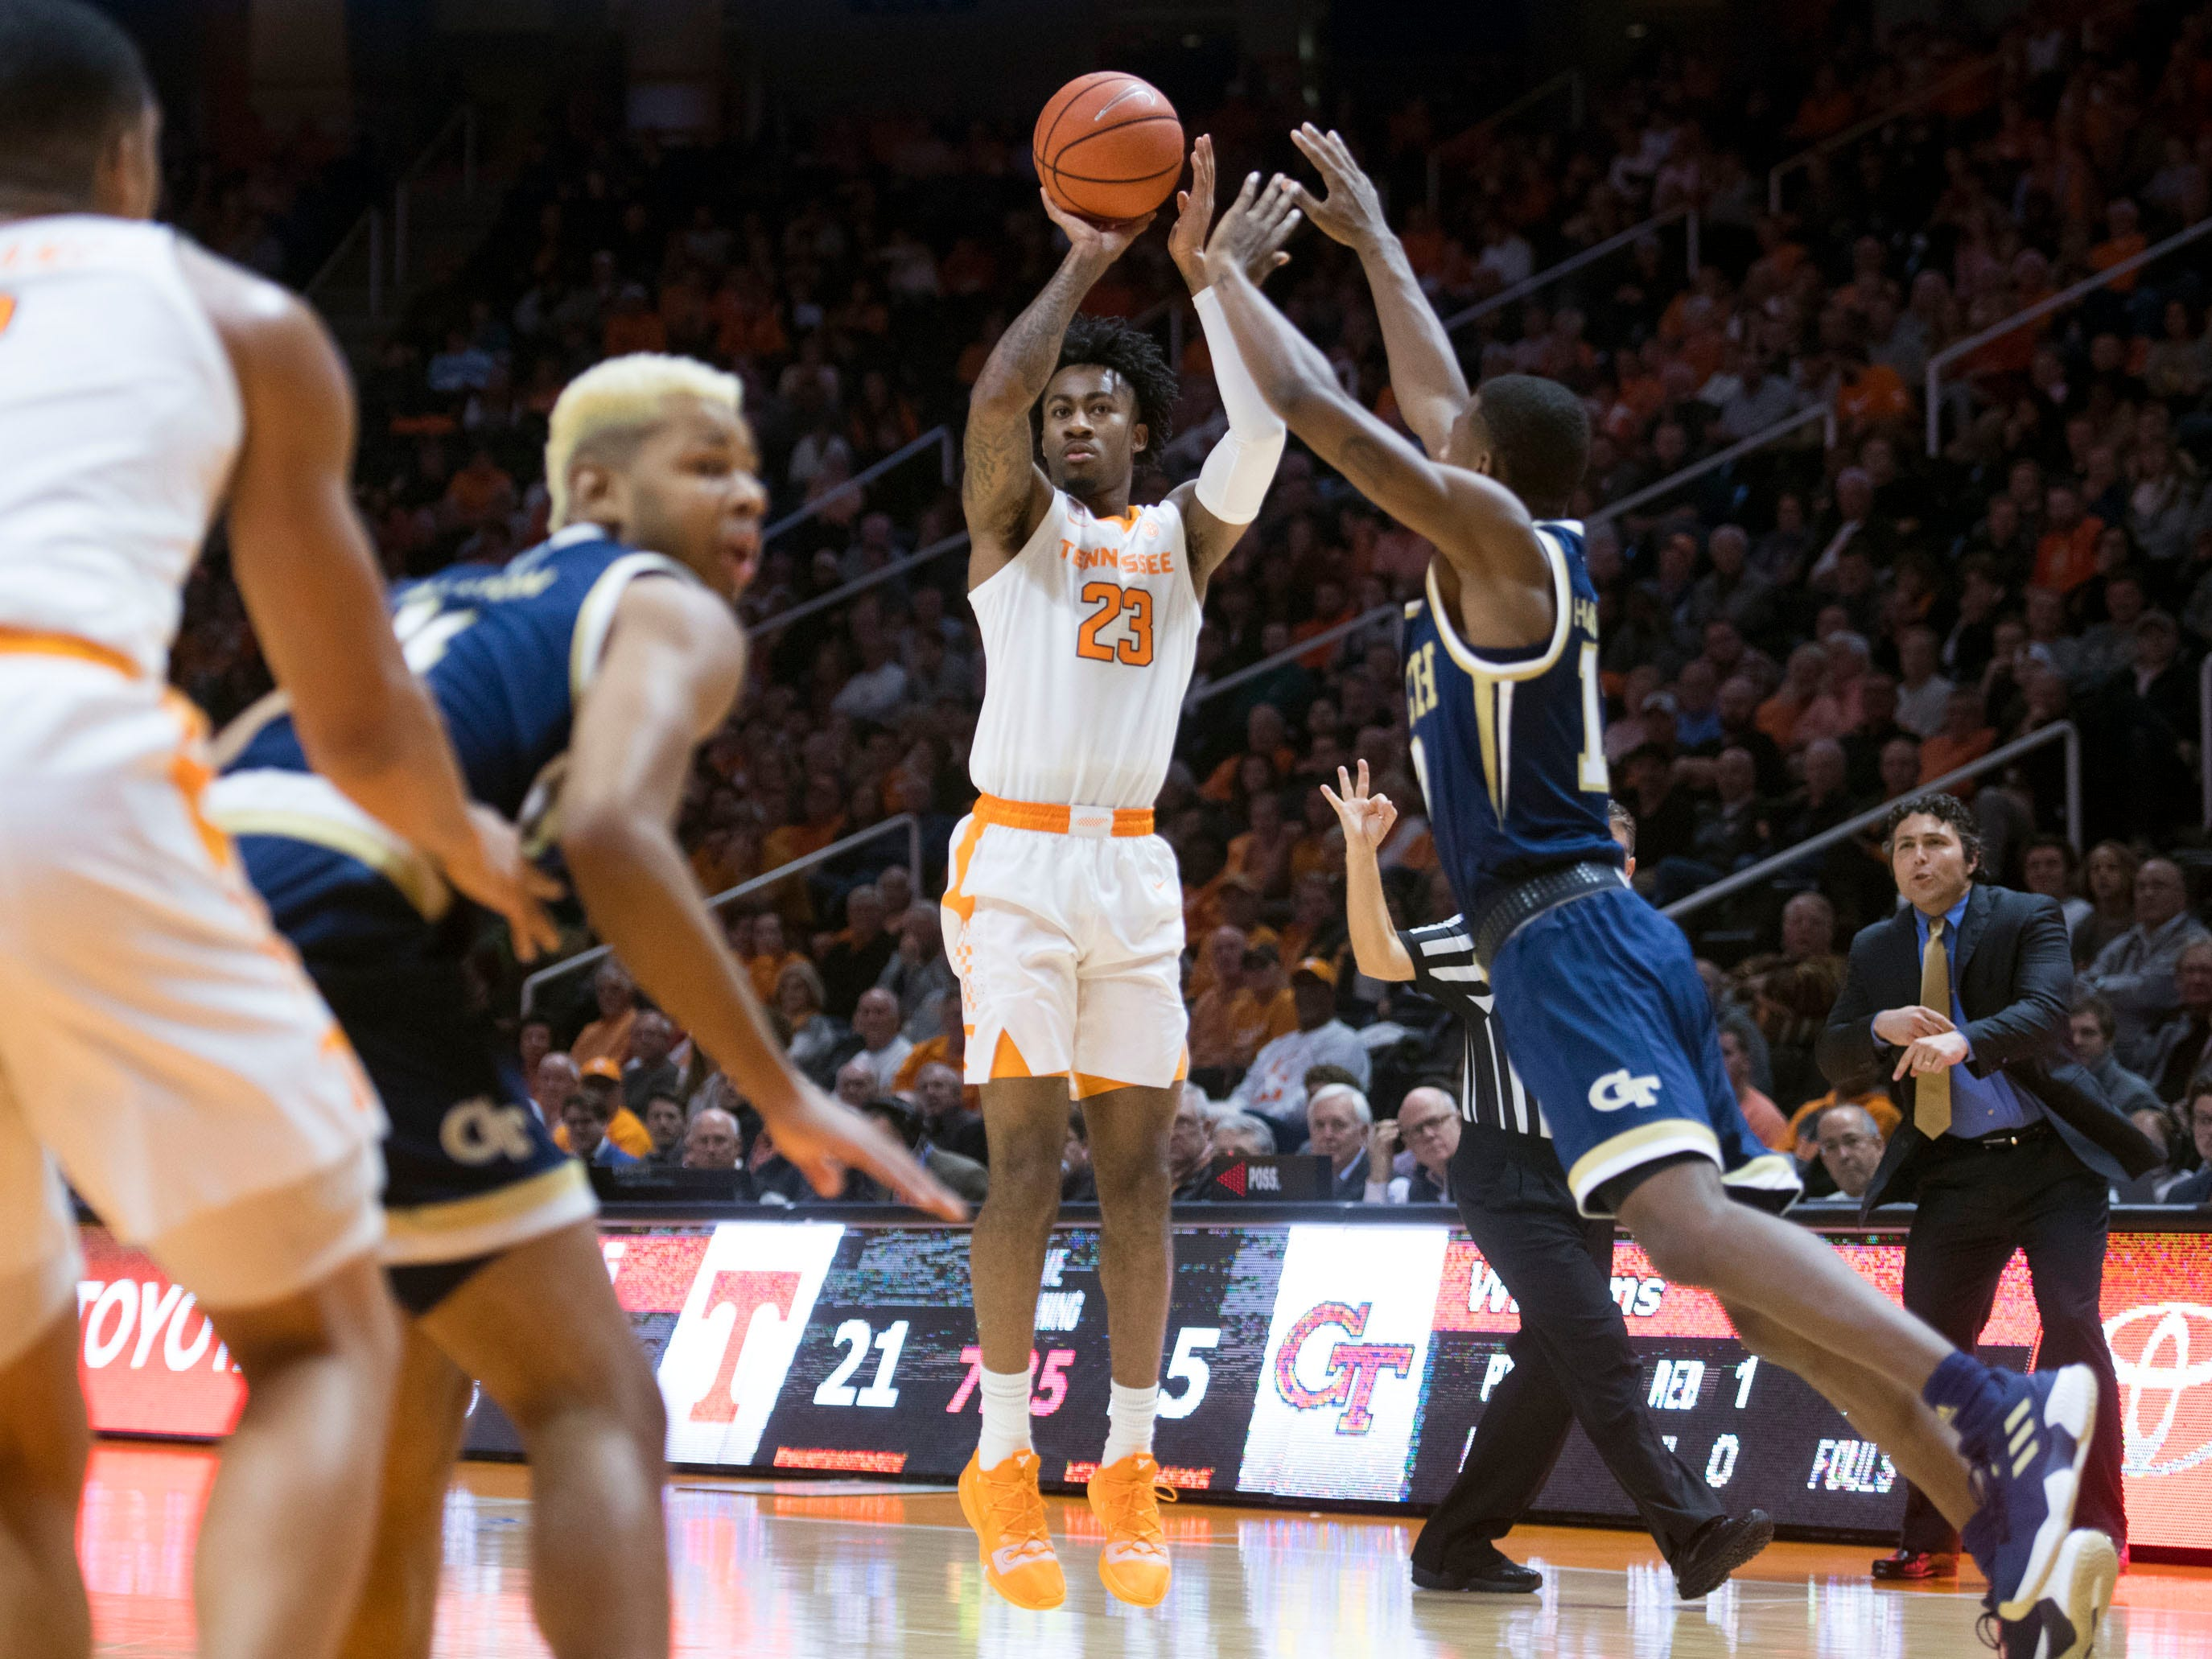 Tennessee's Jordan Bowden (23) scores 3-points while defended by Georgia Tech's Curtis Haywood II (13) at Thompson-Boling Arena on Tuesday, November 13, 2018.